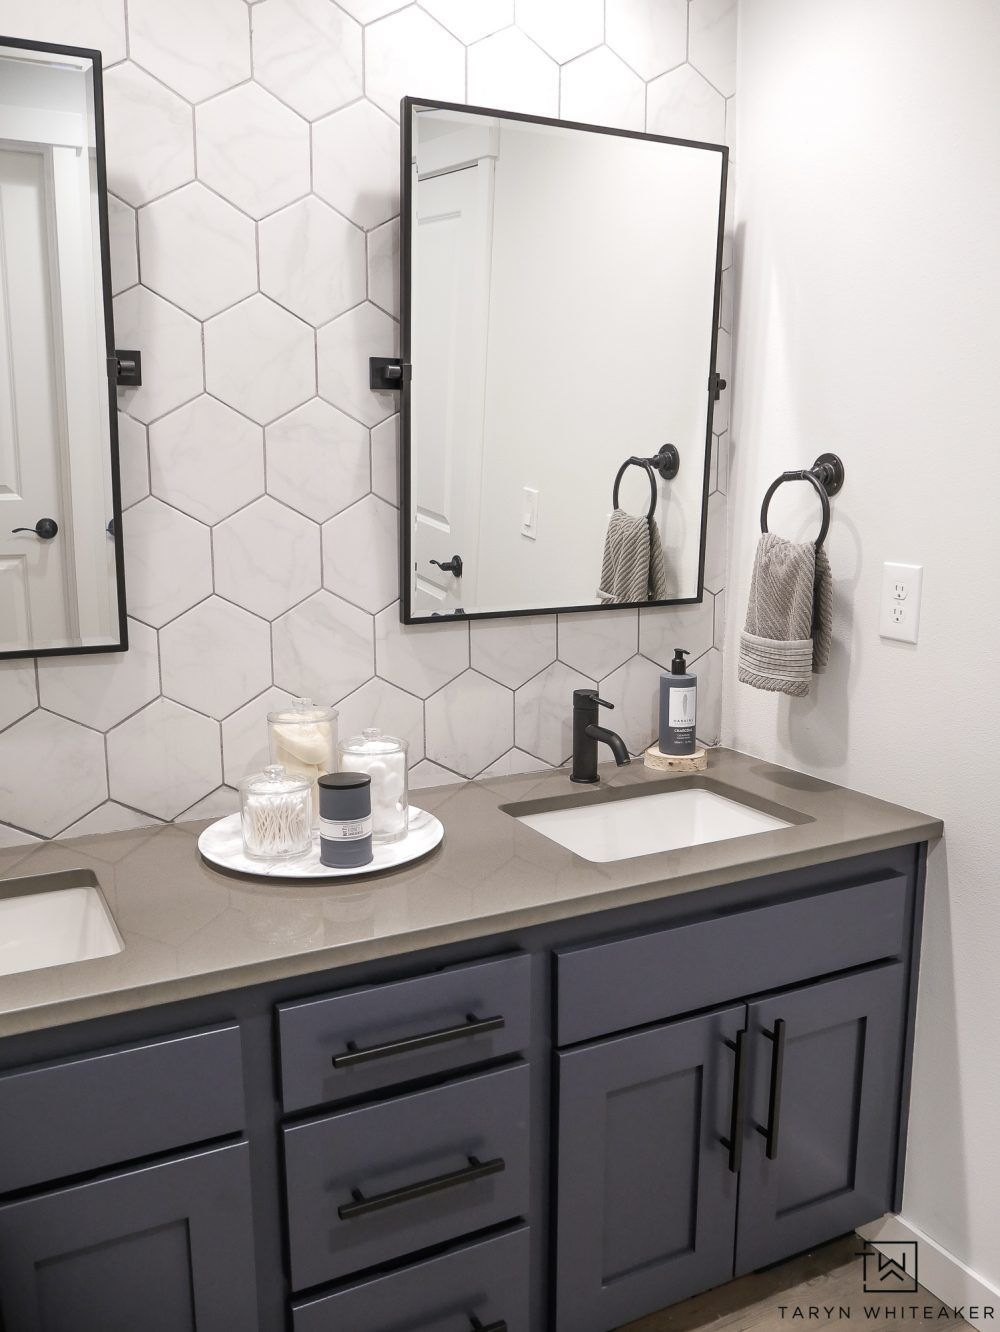 Bathrooms With Two Vanities Separated By Makeup Area Master Bathroom Vanity Bathroom With Makeup Vanity Double Vanity Bathroom